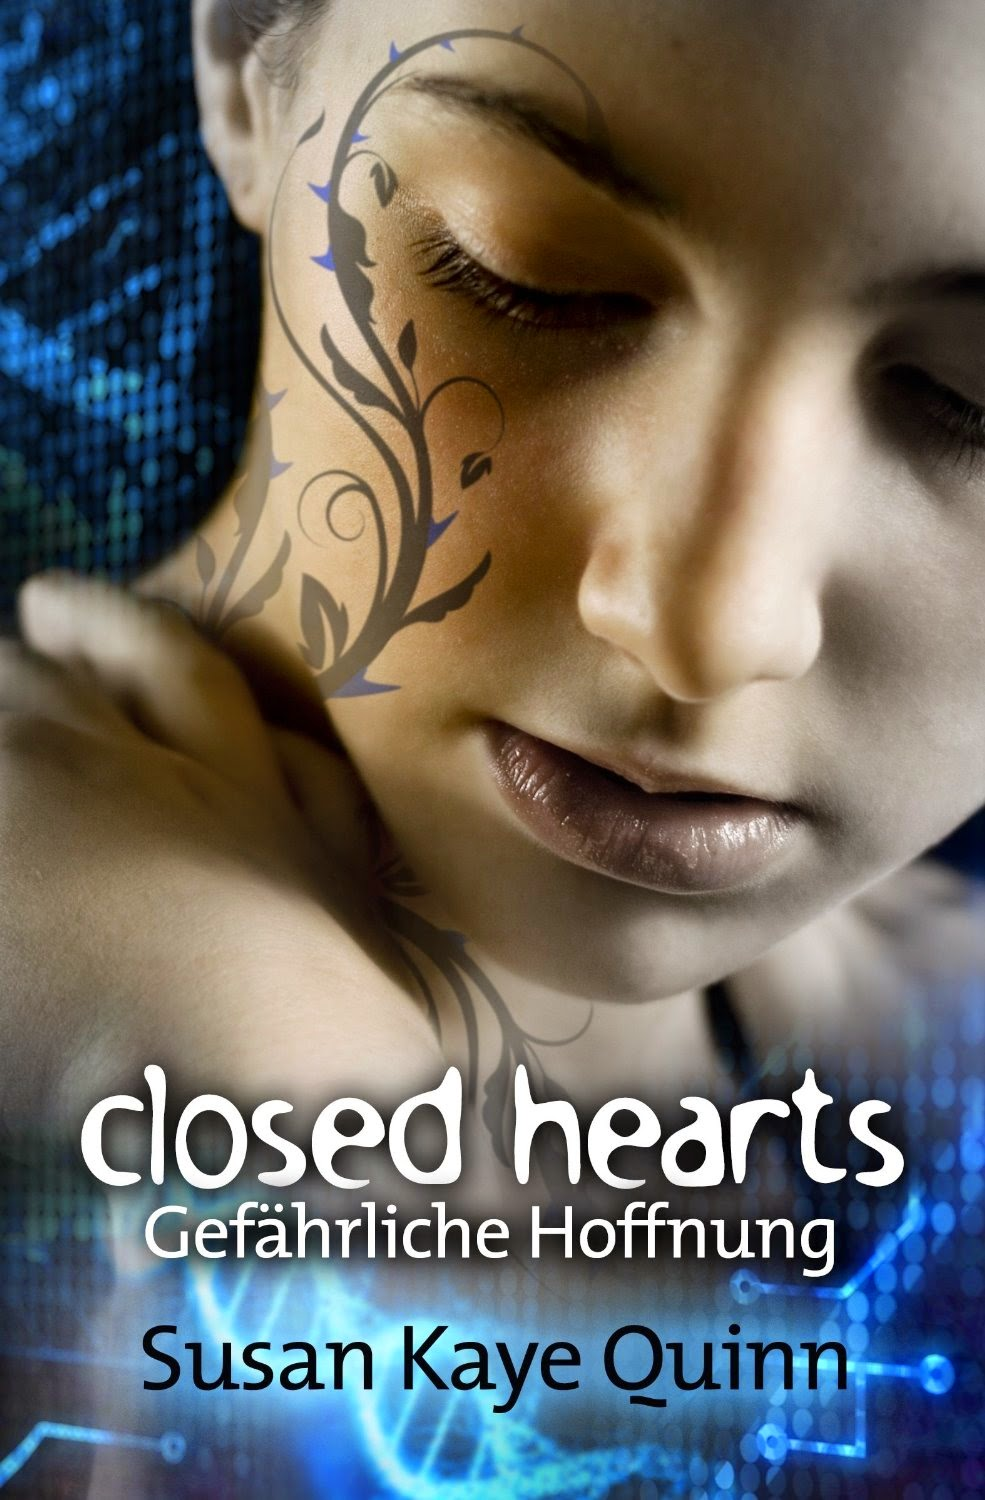 http://www.amazon.de/Closed-Hearts-Gef%C3%A4hrliche-Hoffnung-Mindjack-ebook/dp/B00S1PRHUM/ref=sr_1_1_twi_1?ie=UTF8&qid=1421507645&sr=8-1&keywords=closed+hearts